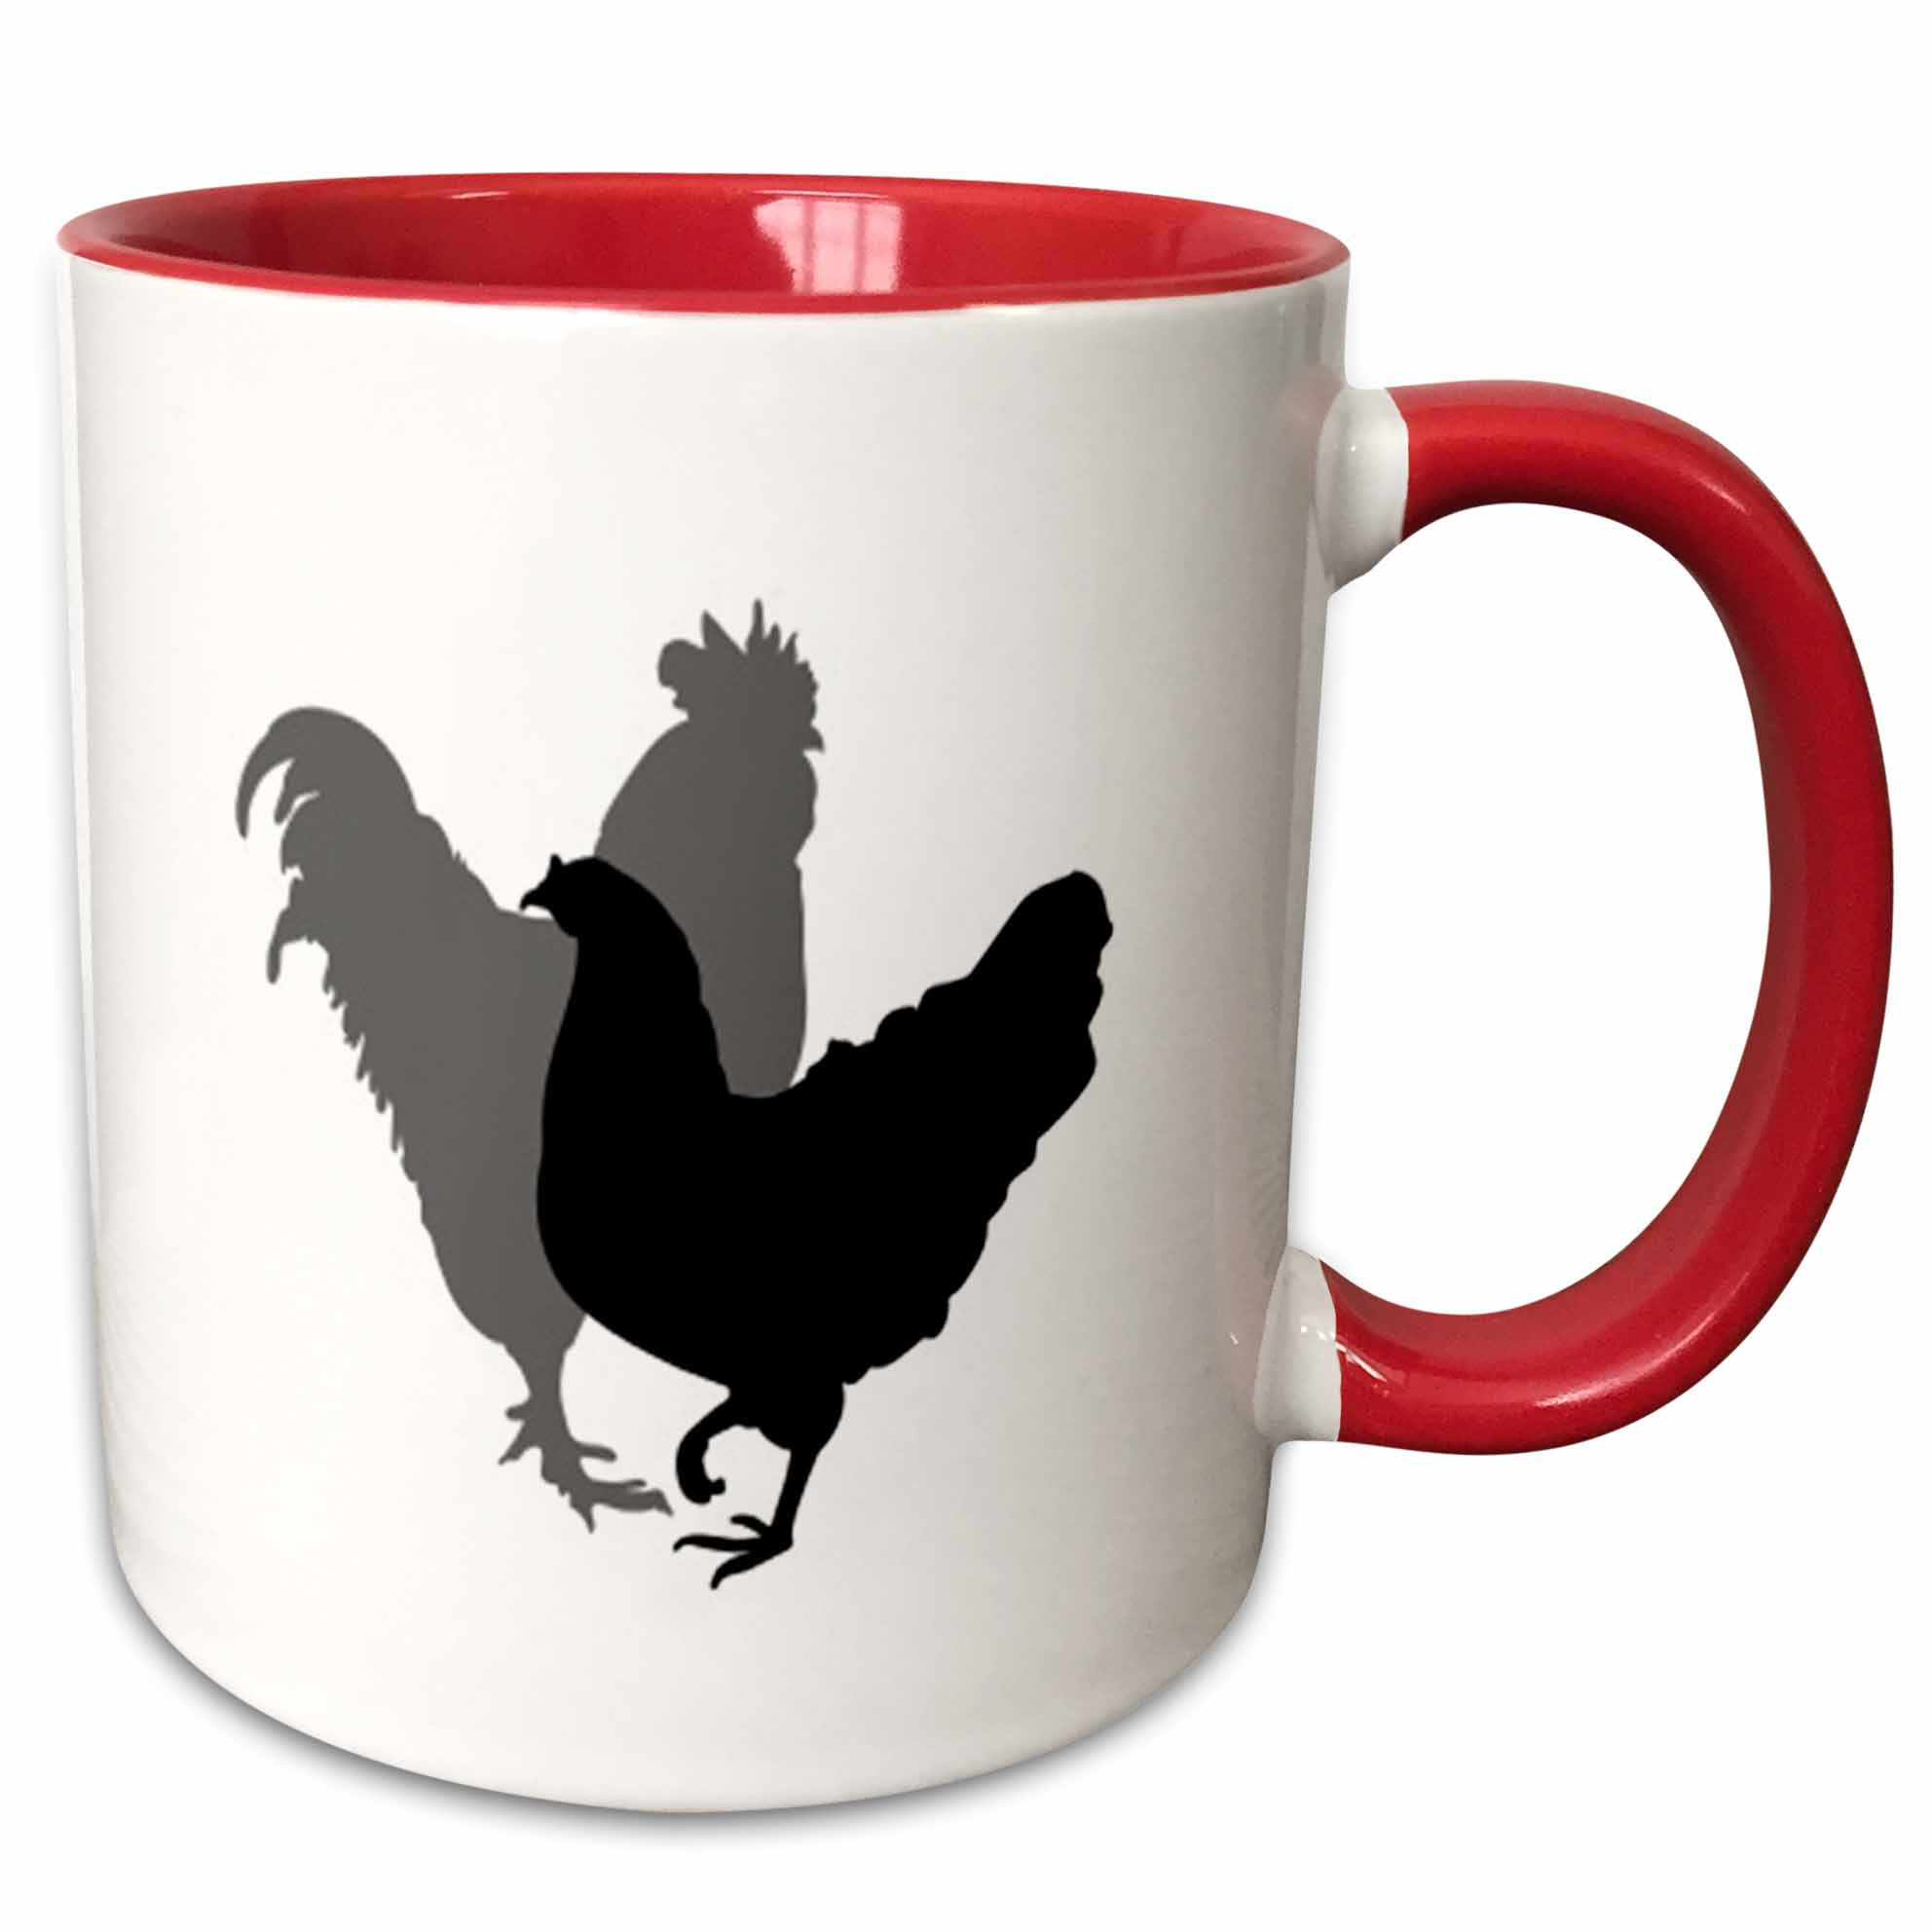 3dRose Image of Silhouette Of Gray And Black Roosters - Two Tone Red Mug, 11-ounce